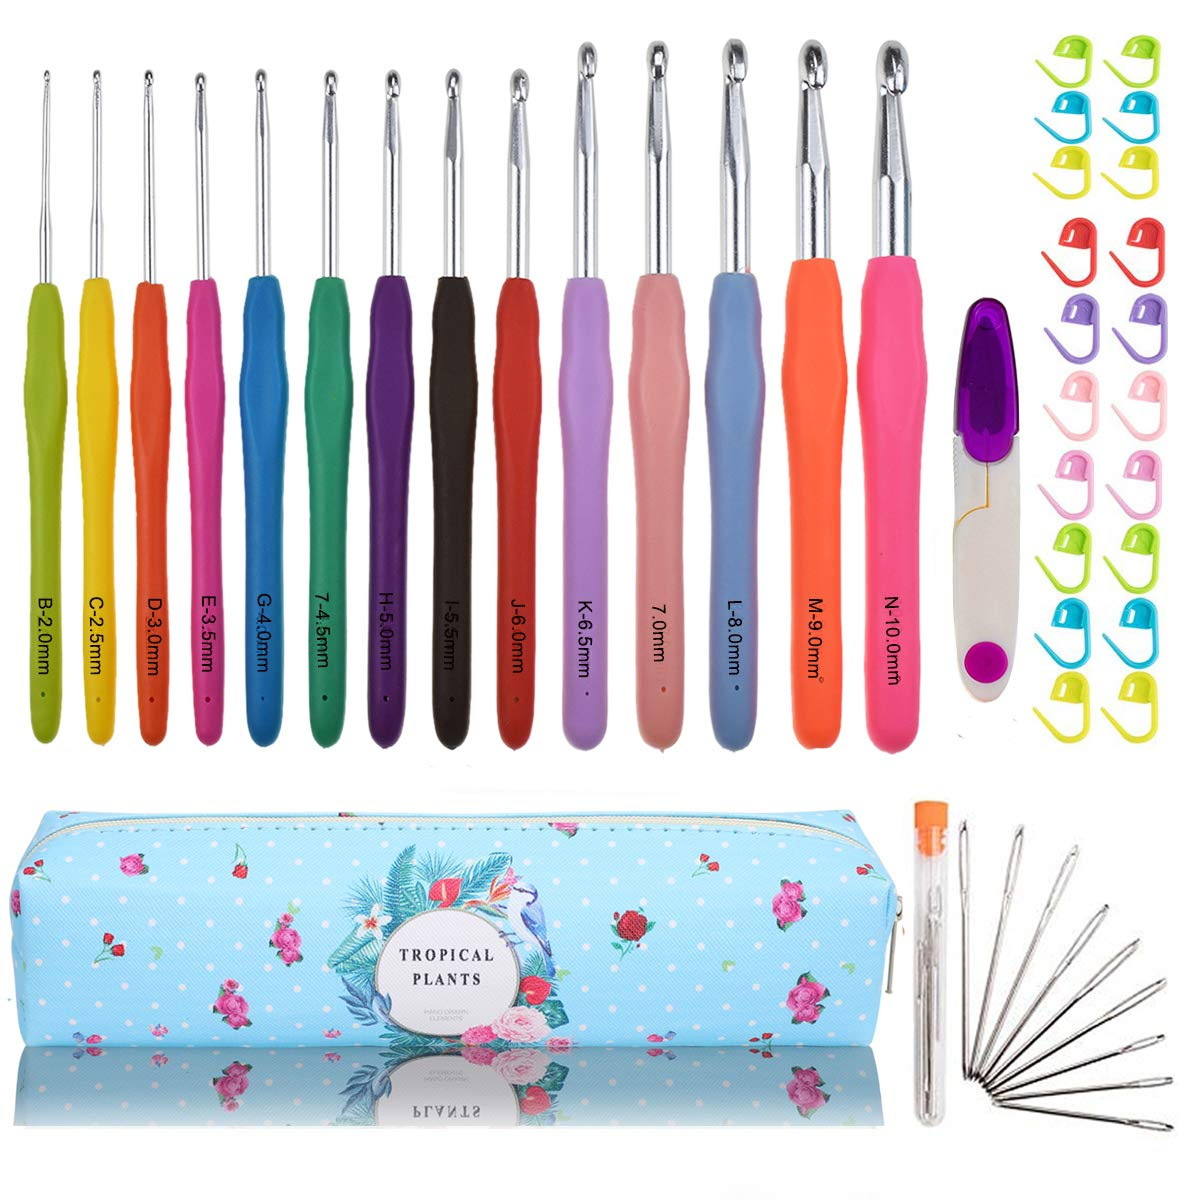 Looen Extra Long Ergonomic Crochet Hook Set with Case Rubber Soft-Touch Handle Grip Knitting Needles Hooks for Arthritic Hands-Good for Crocheting Project (Set 1 of 14)